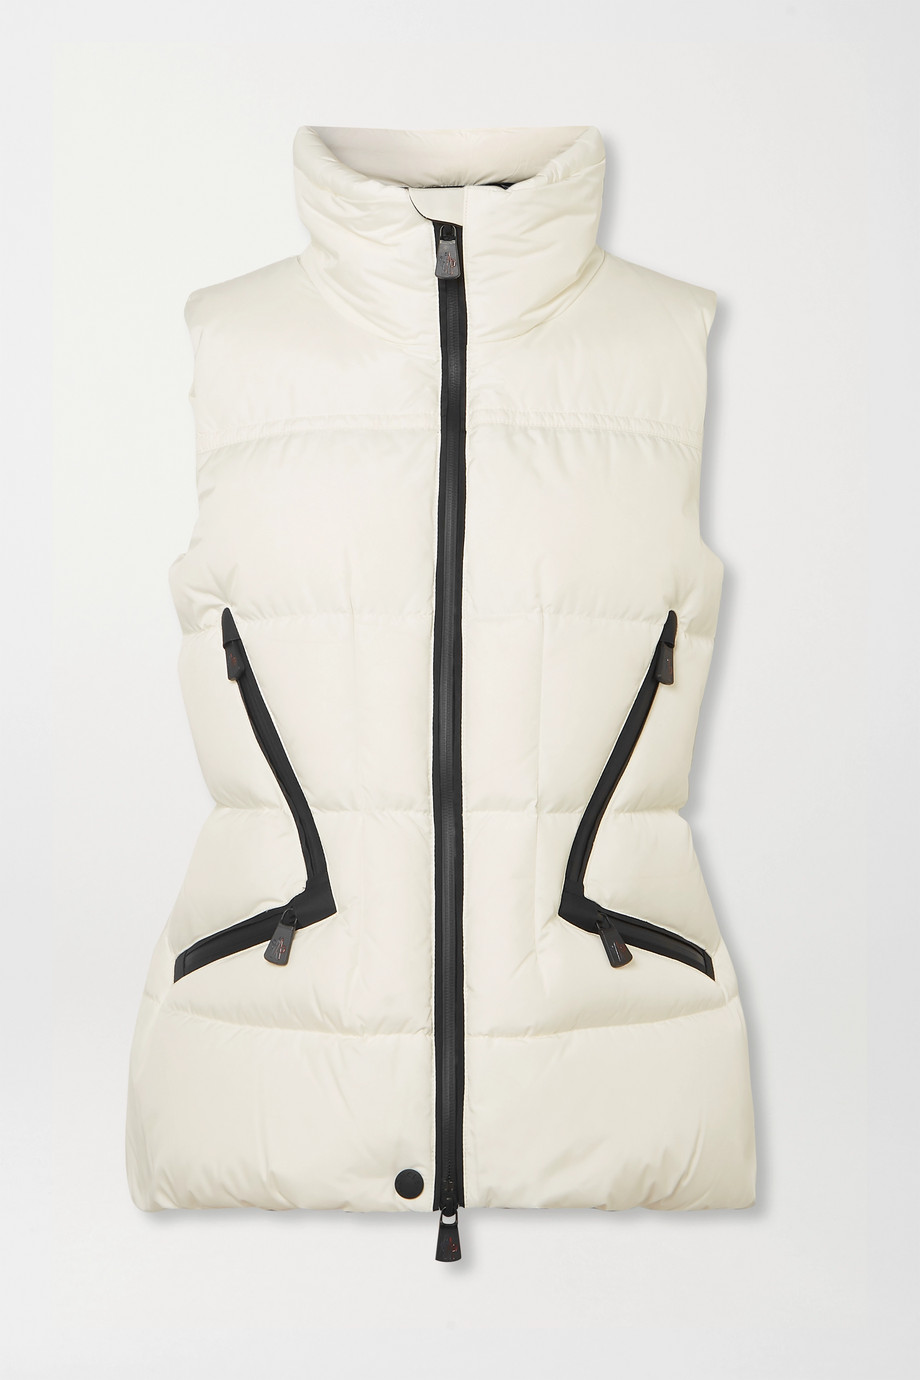 Moncler Grenoble Atka quilted down ski vest